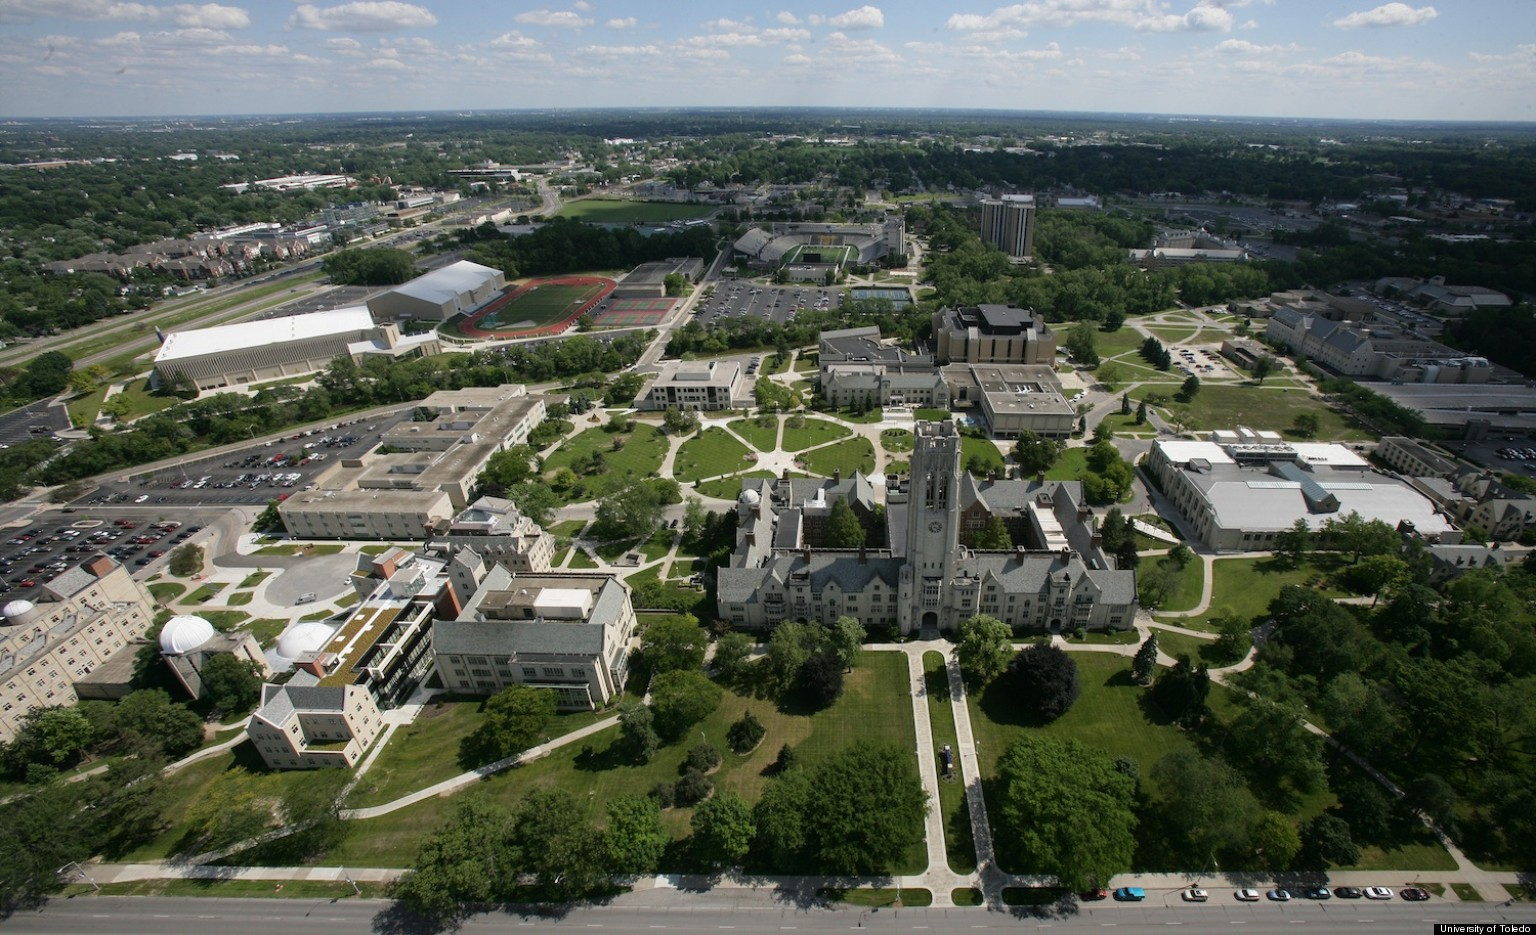 9 Reasons Why You Should Attend The University Of Toledo